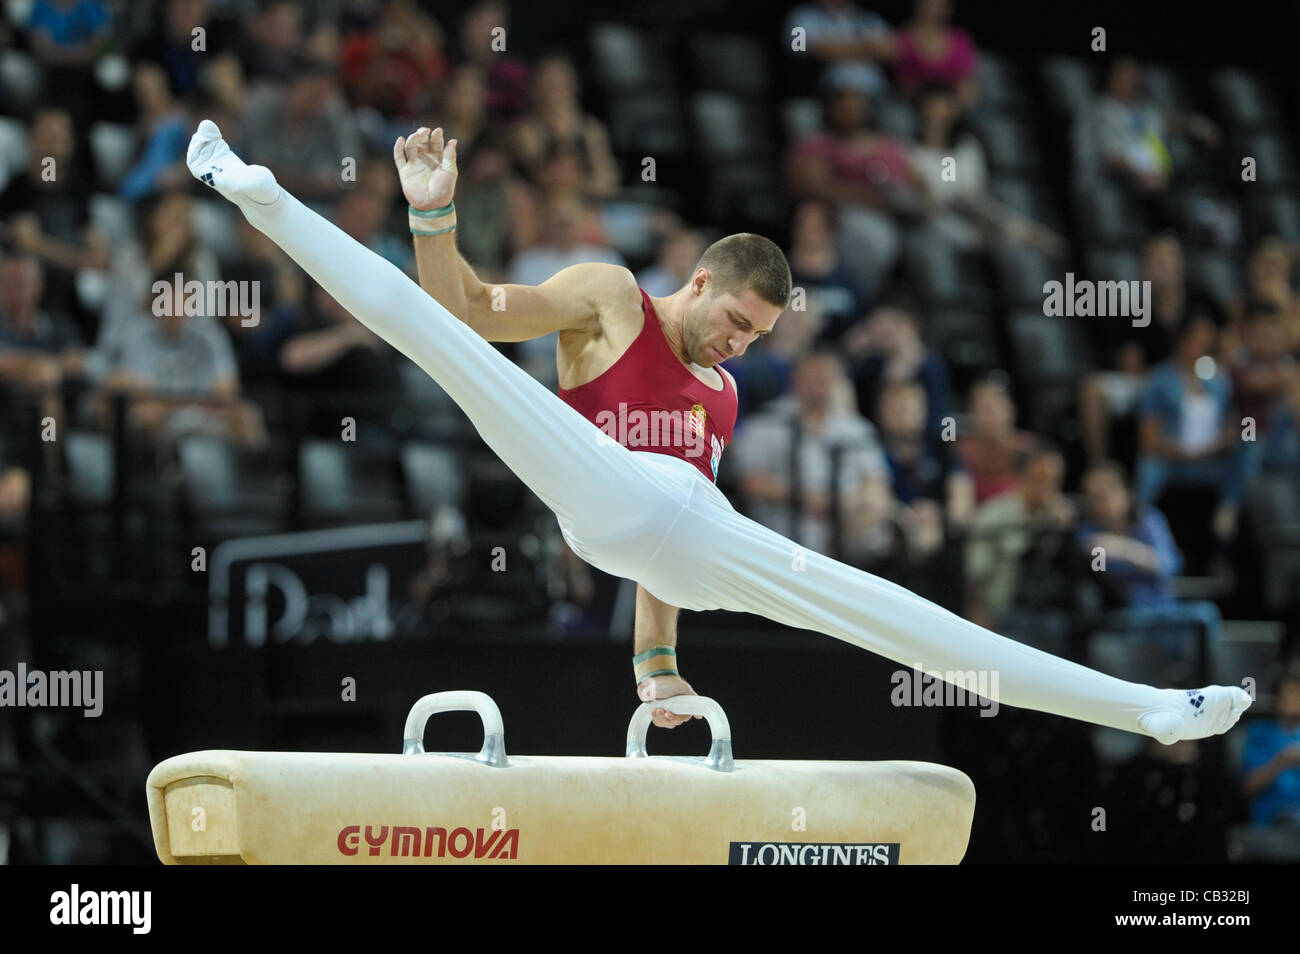 European Gymnastics Championships. Montpelier France. Senior Mens Individual Apparatus Finals  27.5.12.European - Stock Image